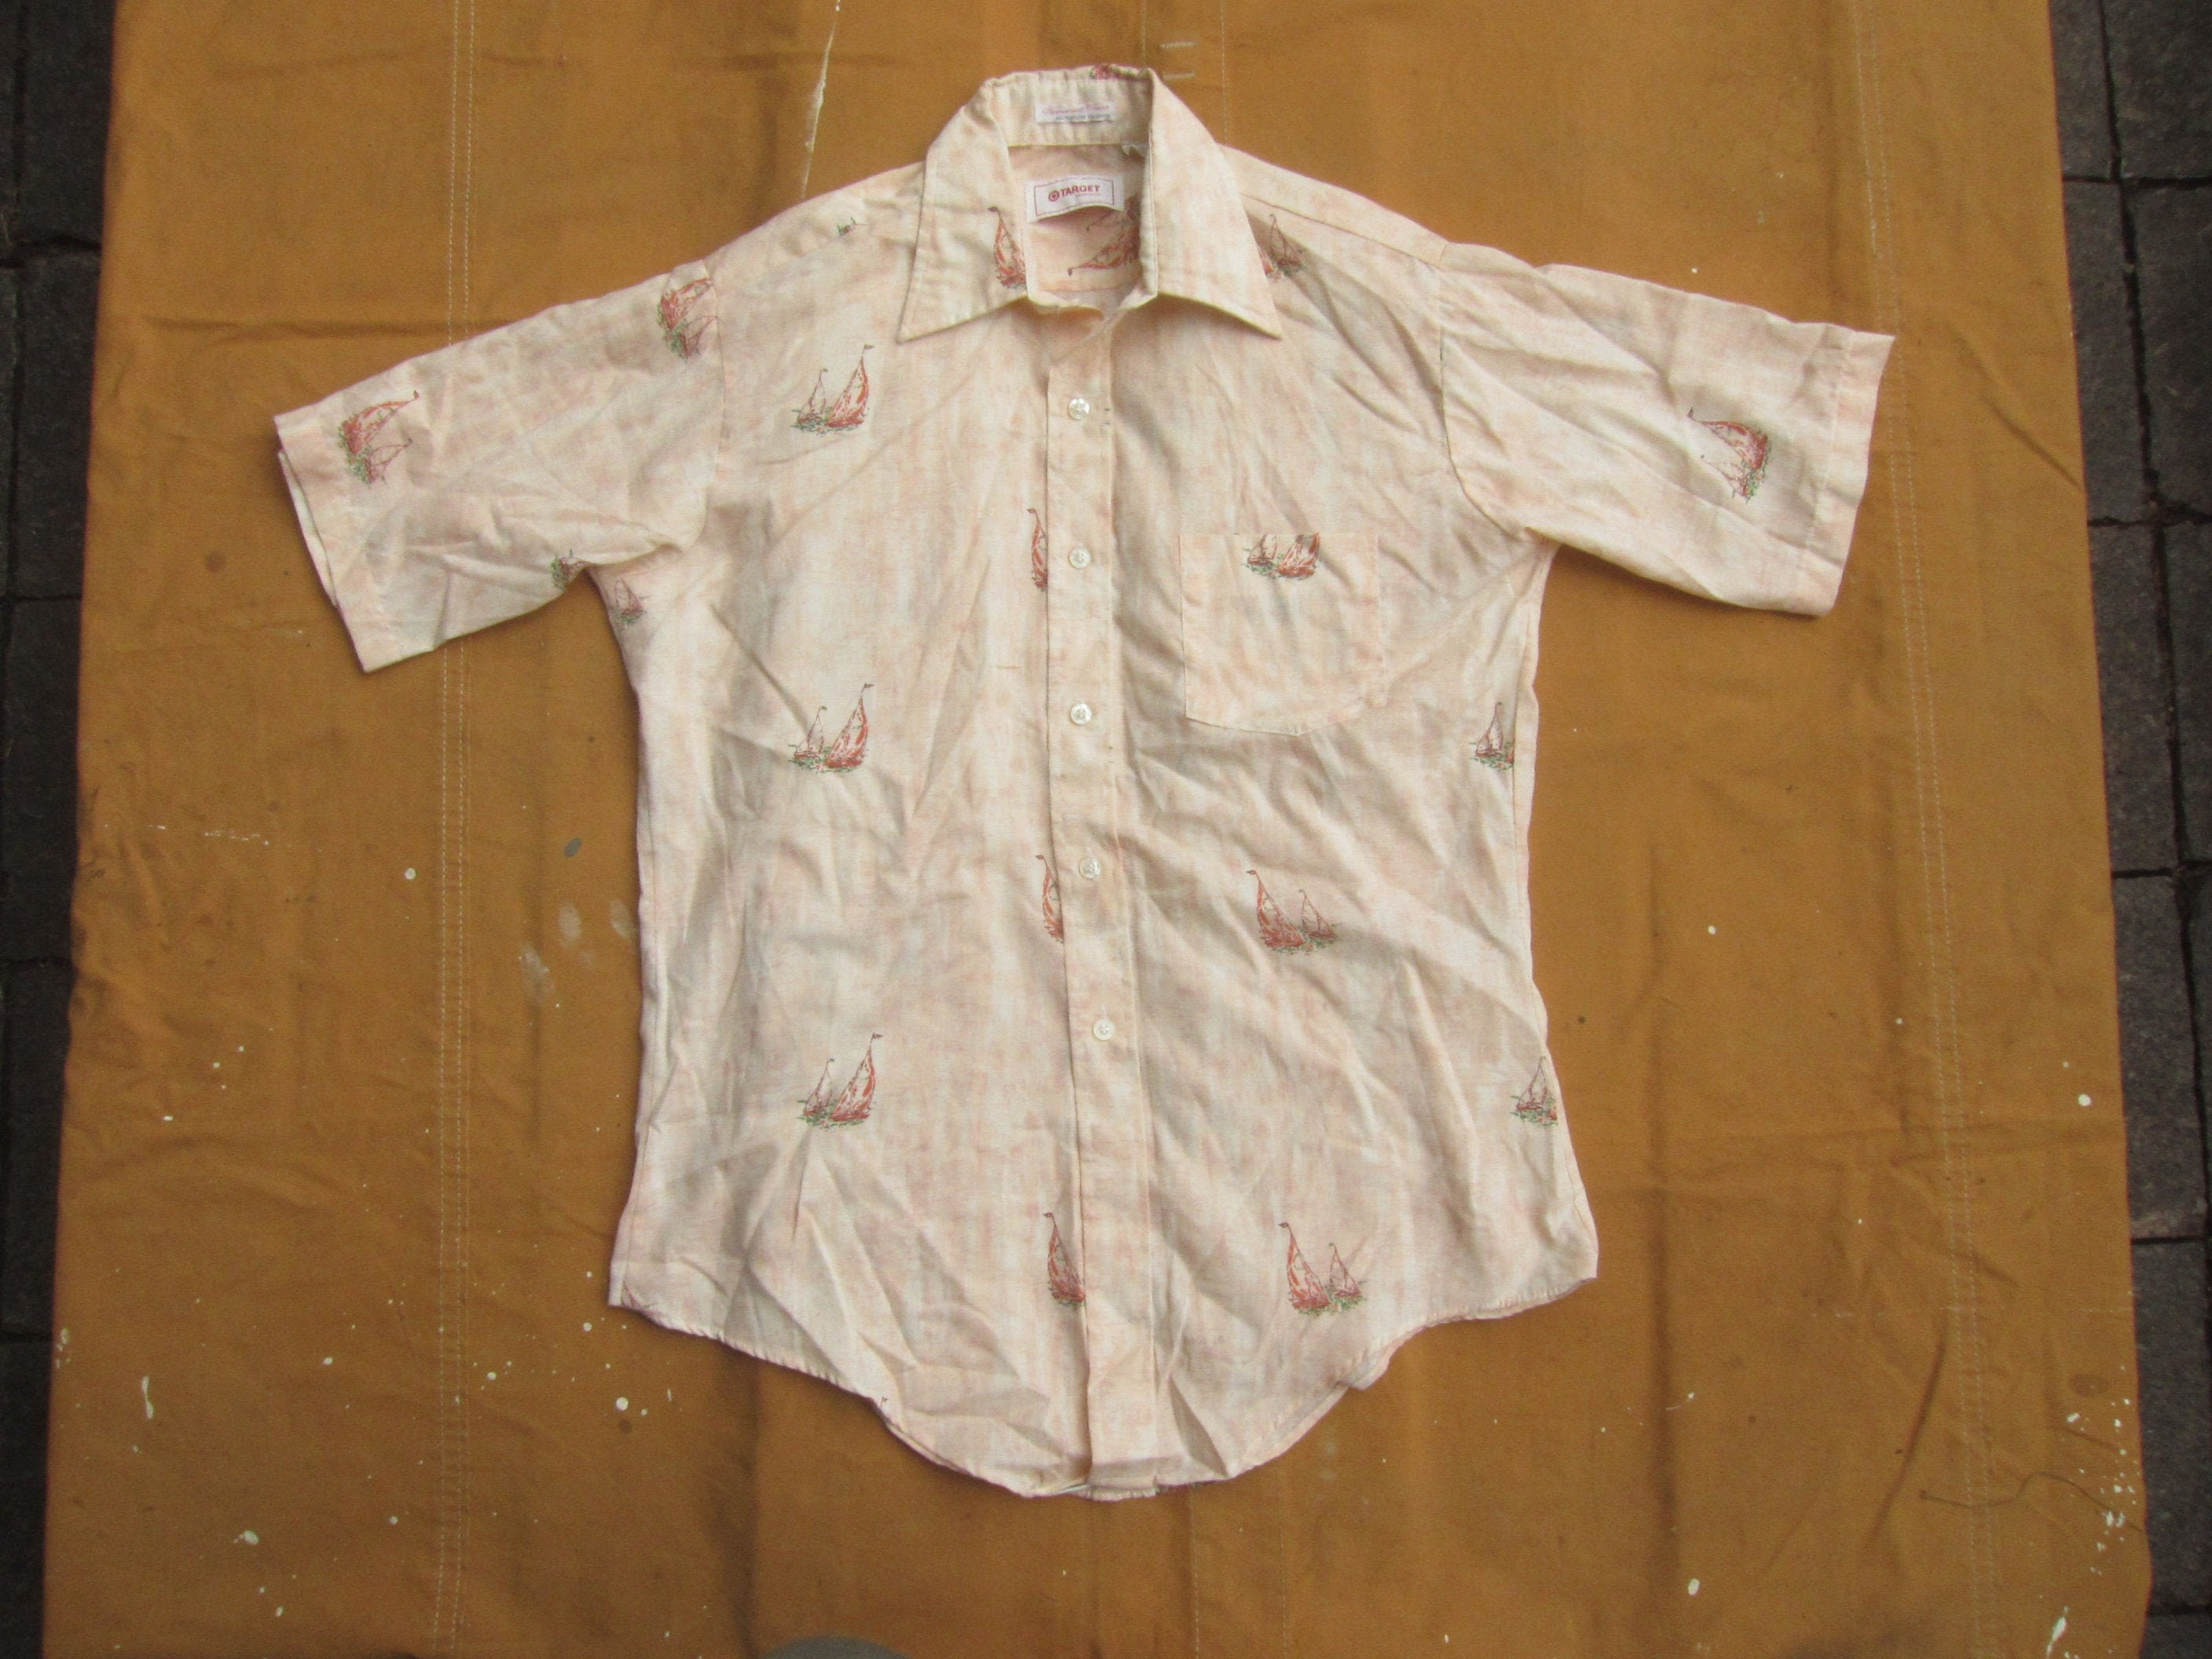 1970s Mens Shirt Styles – Vintage 70s Shirts for Guys MediumLarge 70S Sailing Boat Pattern Print Shirt Short Sleeve Button Up Down, Collared, Target Corporation, Minneapolis Mn, 1970S $0.00 AT vintagedancer.com